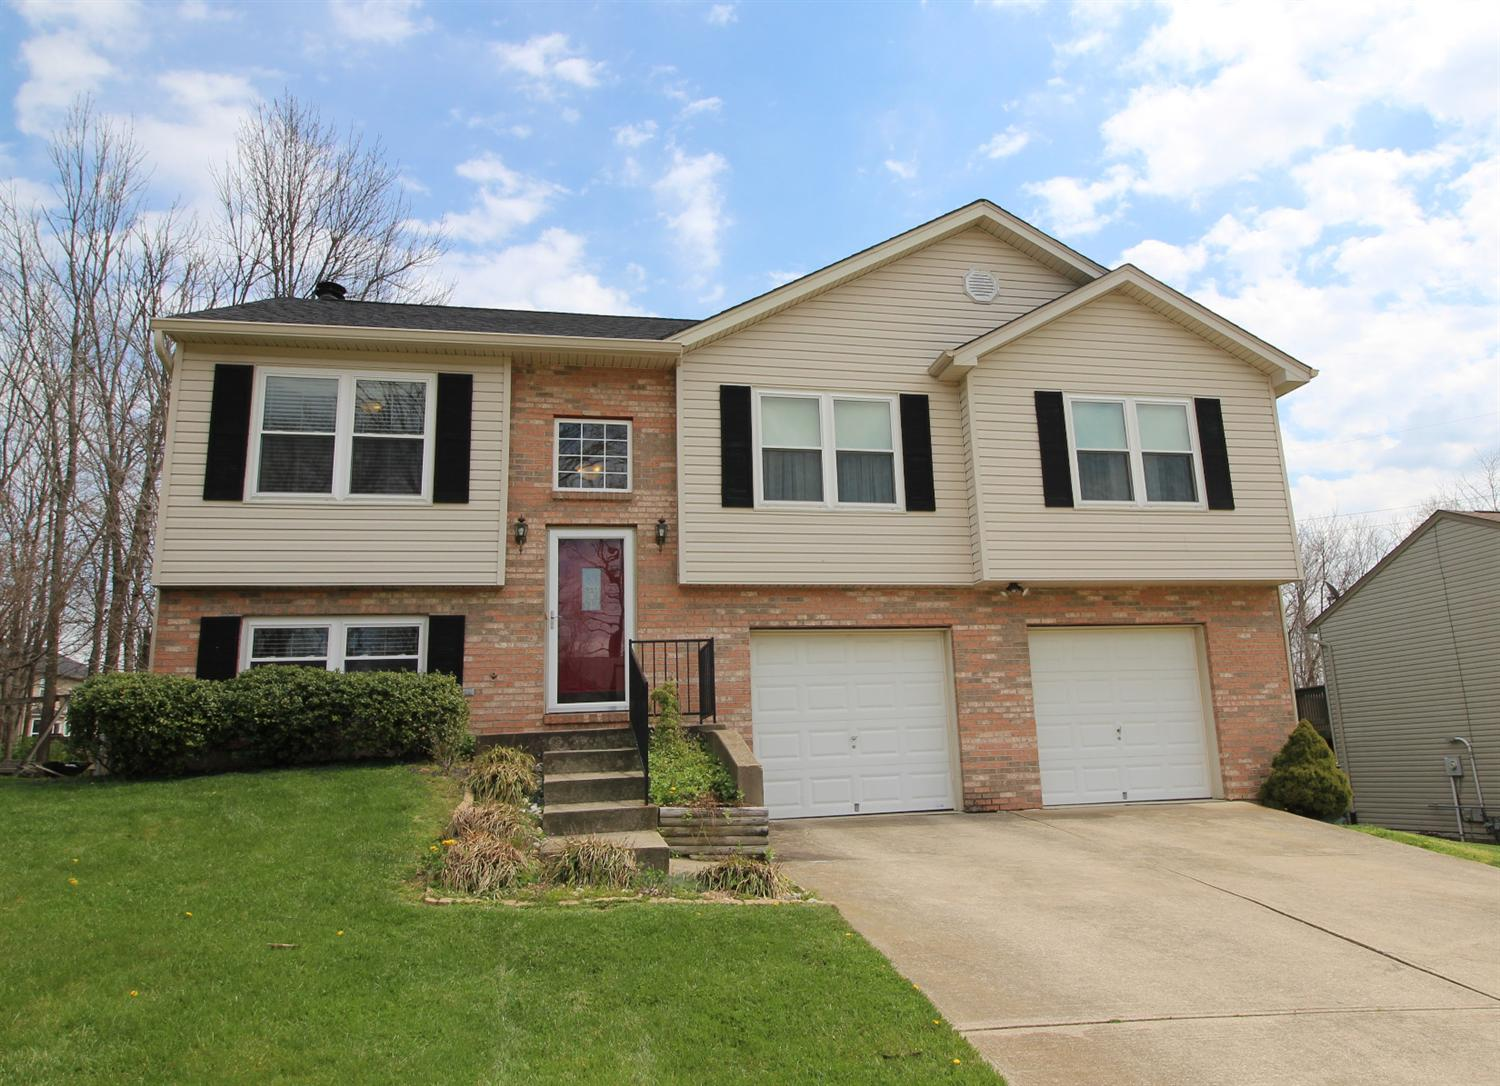 Photo 1 for 5 S Bellewood Ct Alexandria, KY 41001